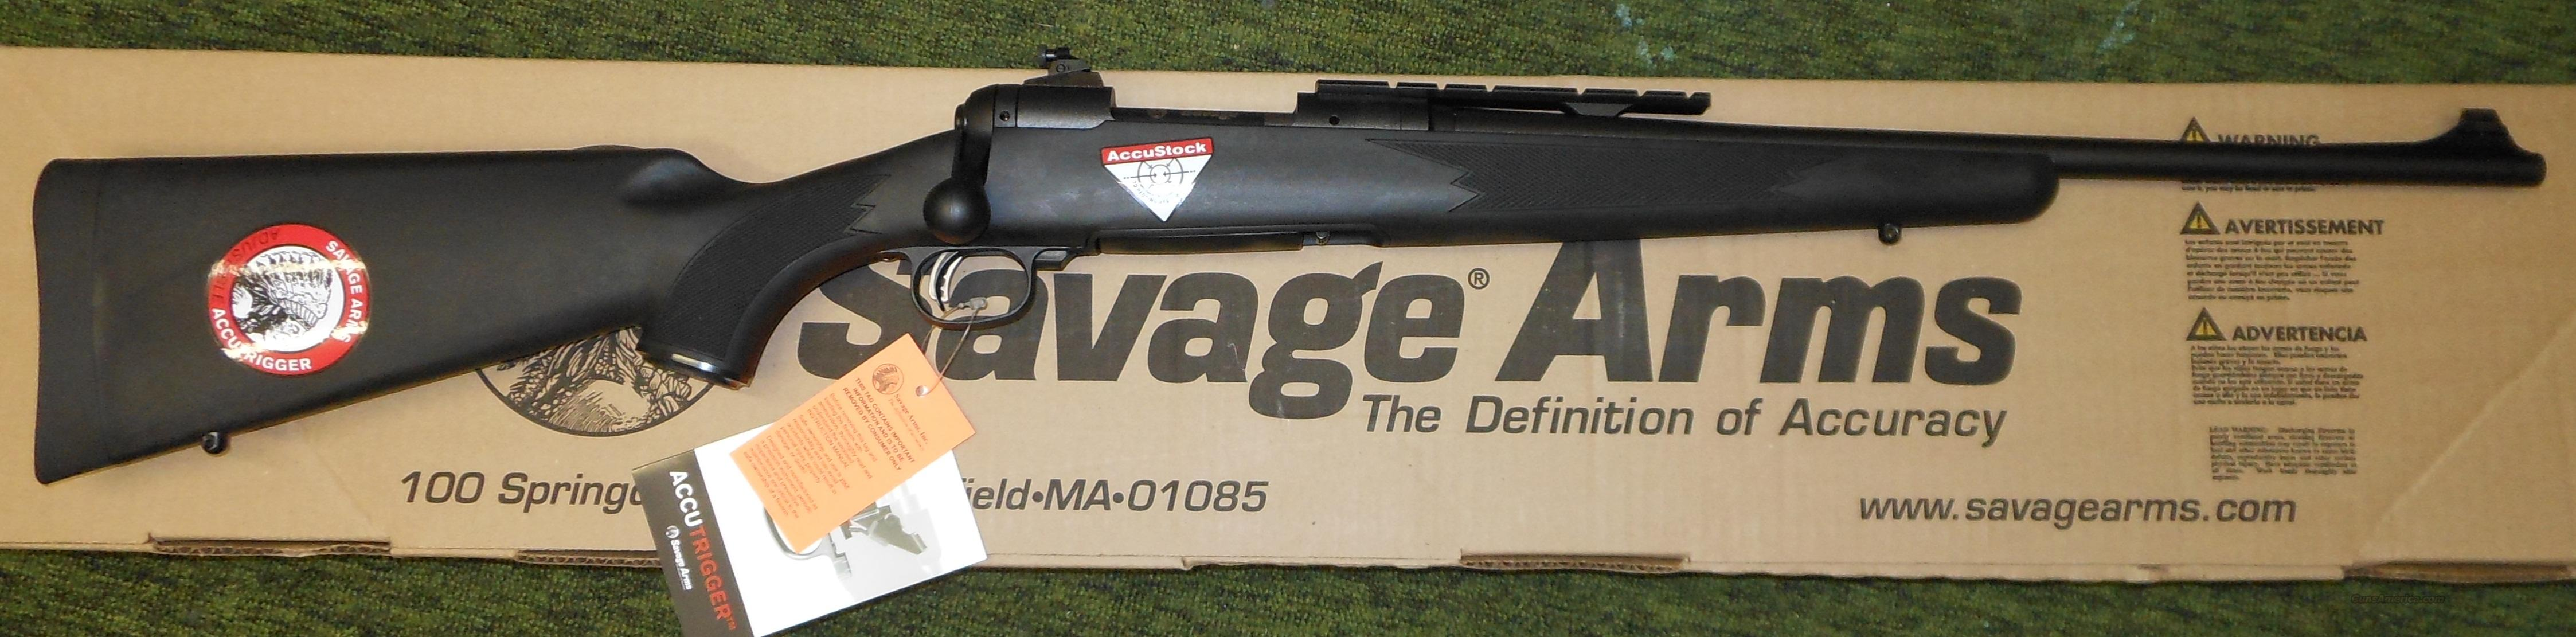 SAVAGE ARMS MOD 10 FCM 7.62X39 SCOUT RIFLE (19128)  Guns > Rifles > Savage Rifles > Accutrigger Models > Tactical